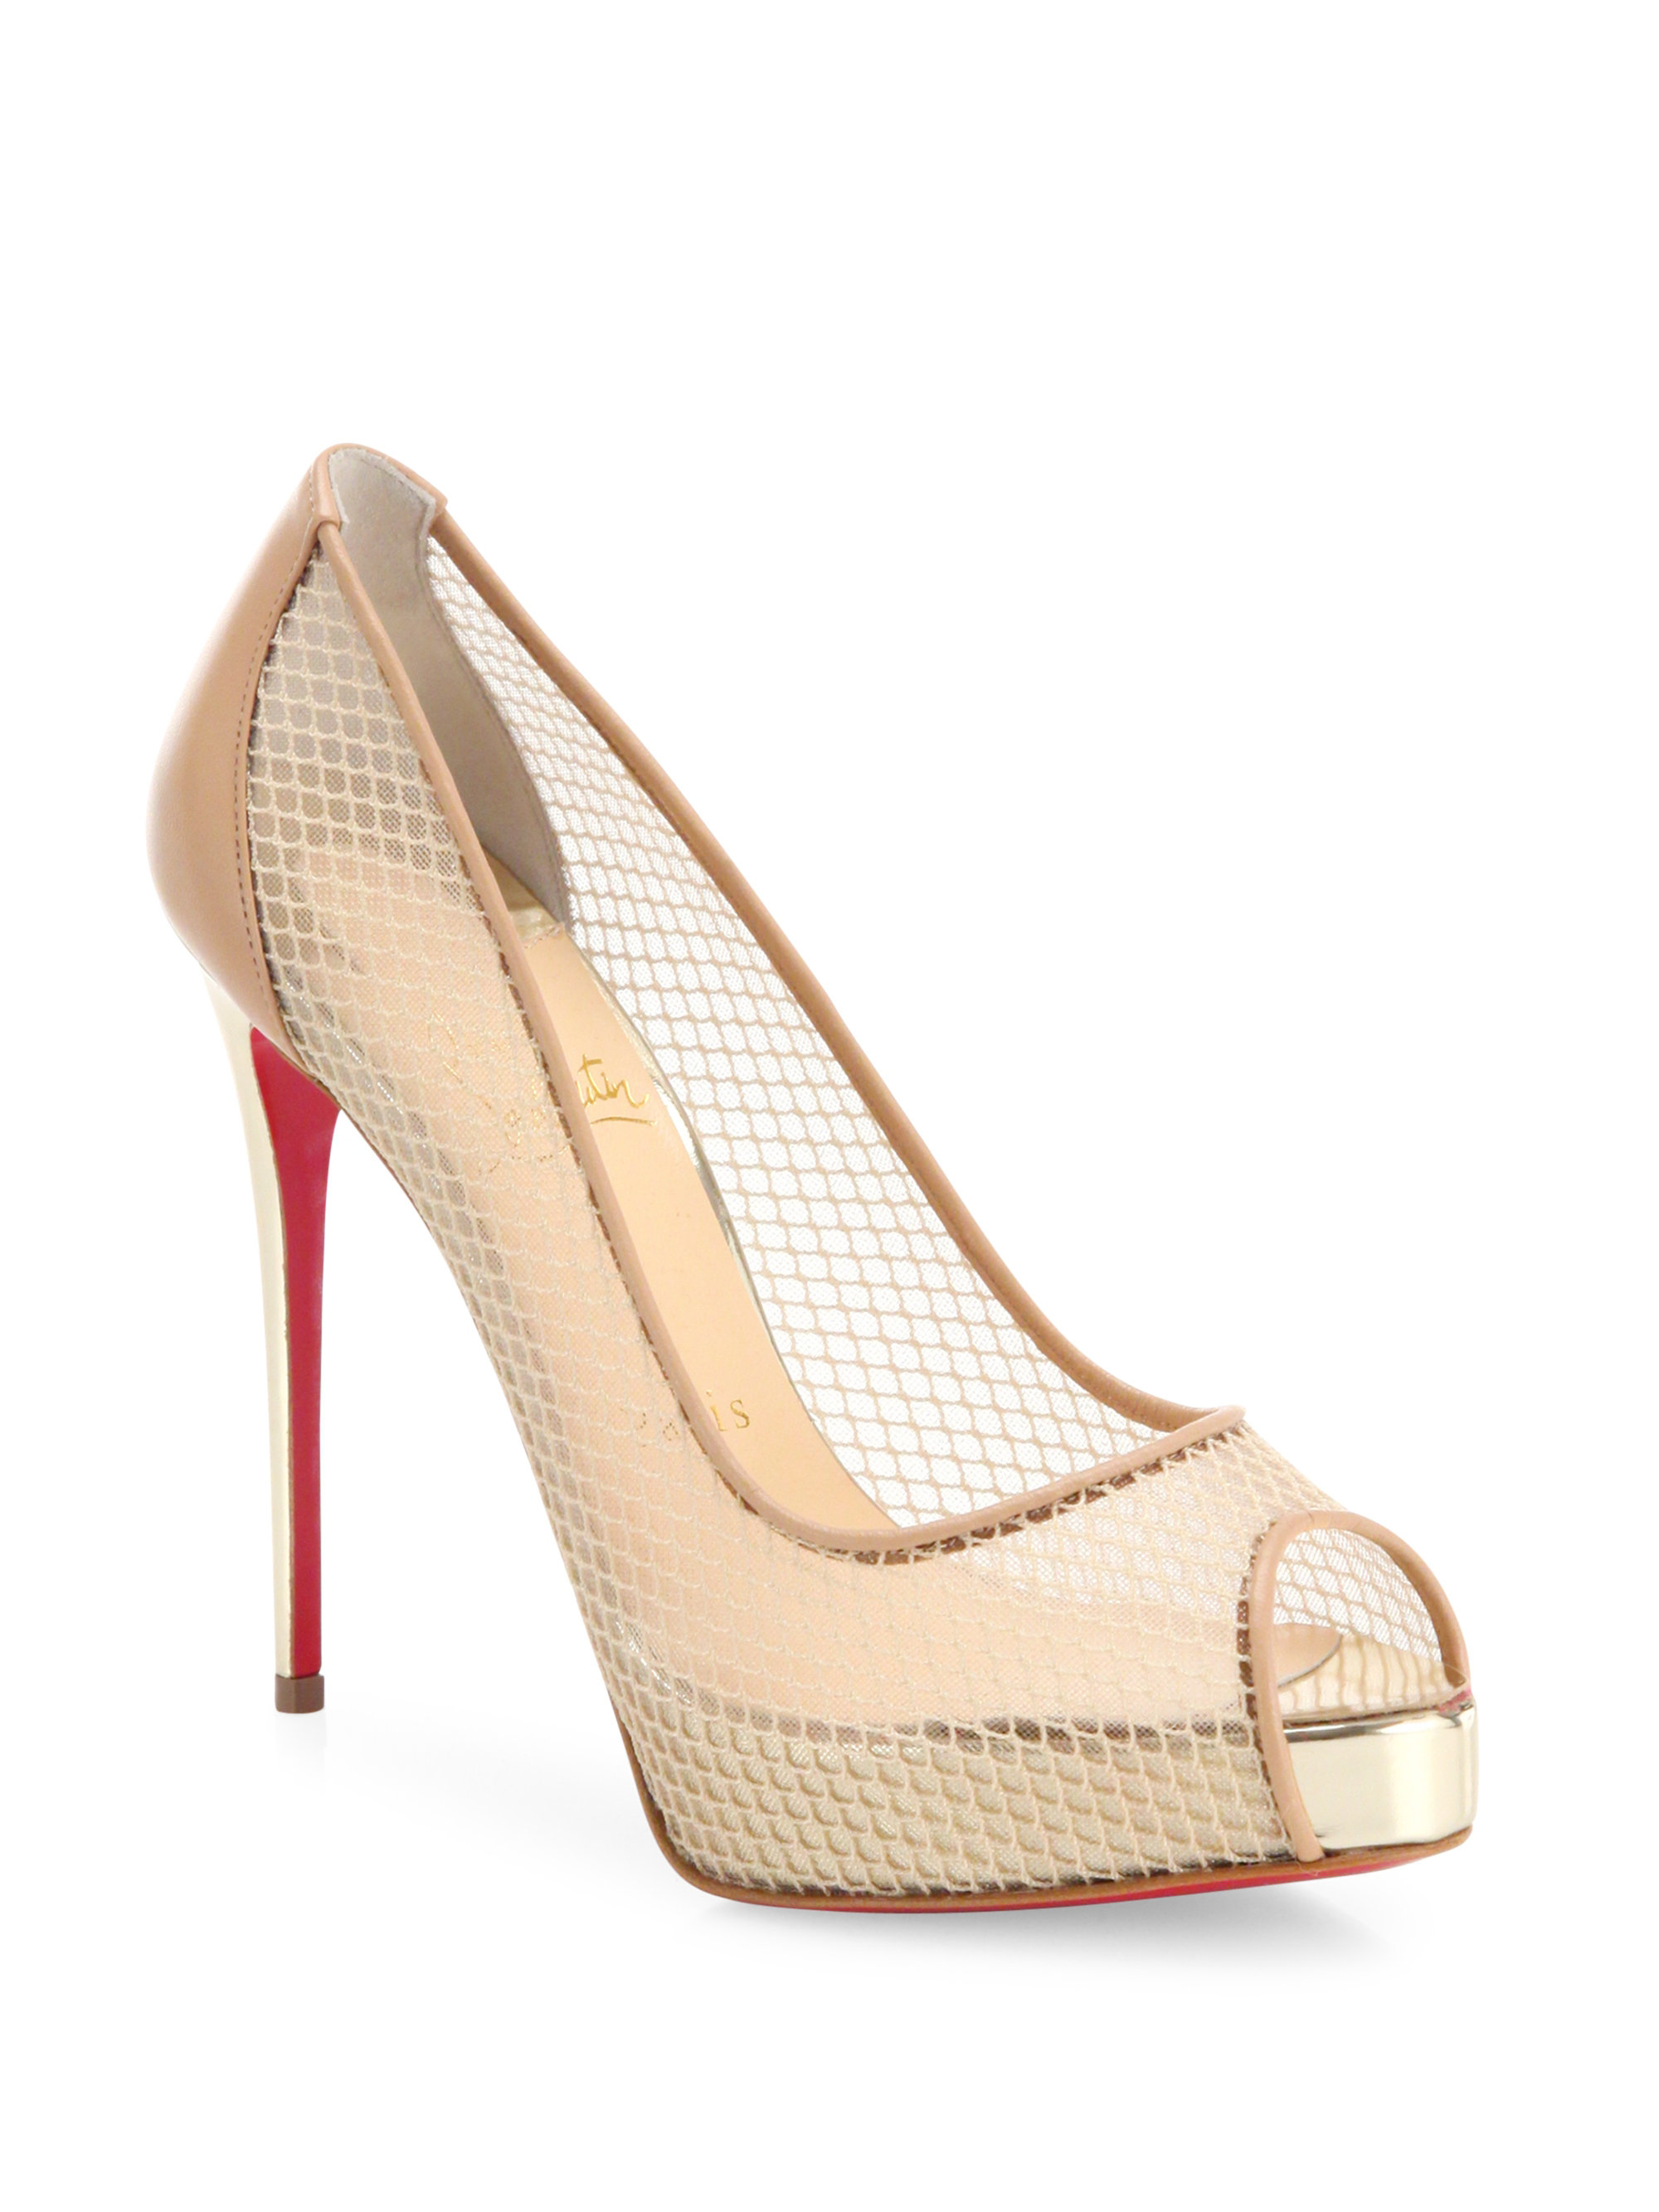 san francisco 5df51 3991f Christian Louboutin Red Very Rete Mesh Peep Toe Pumps